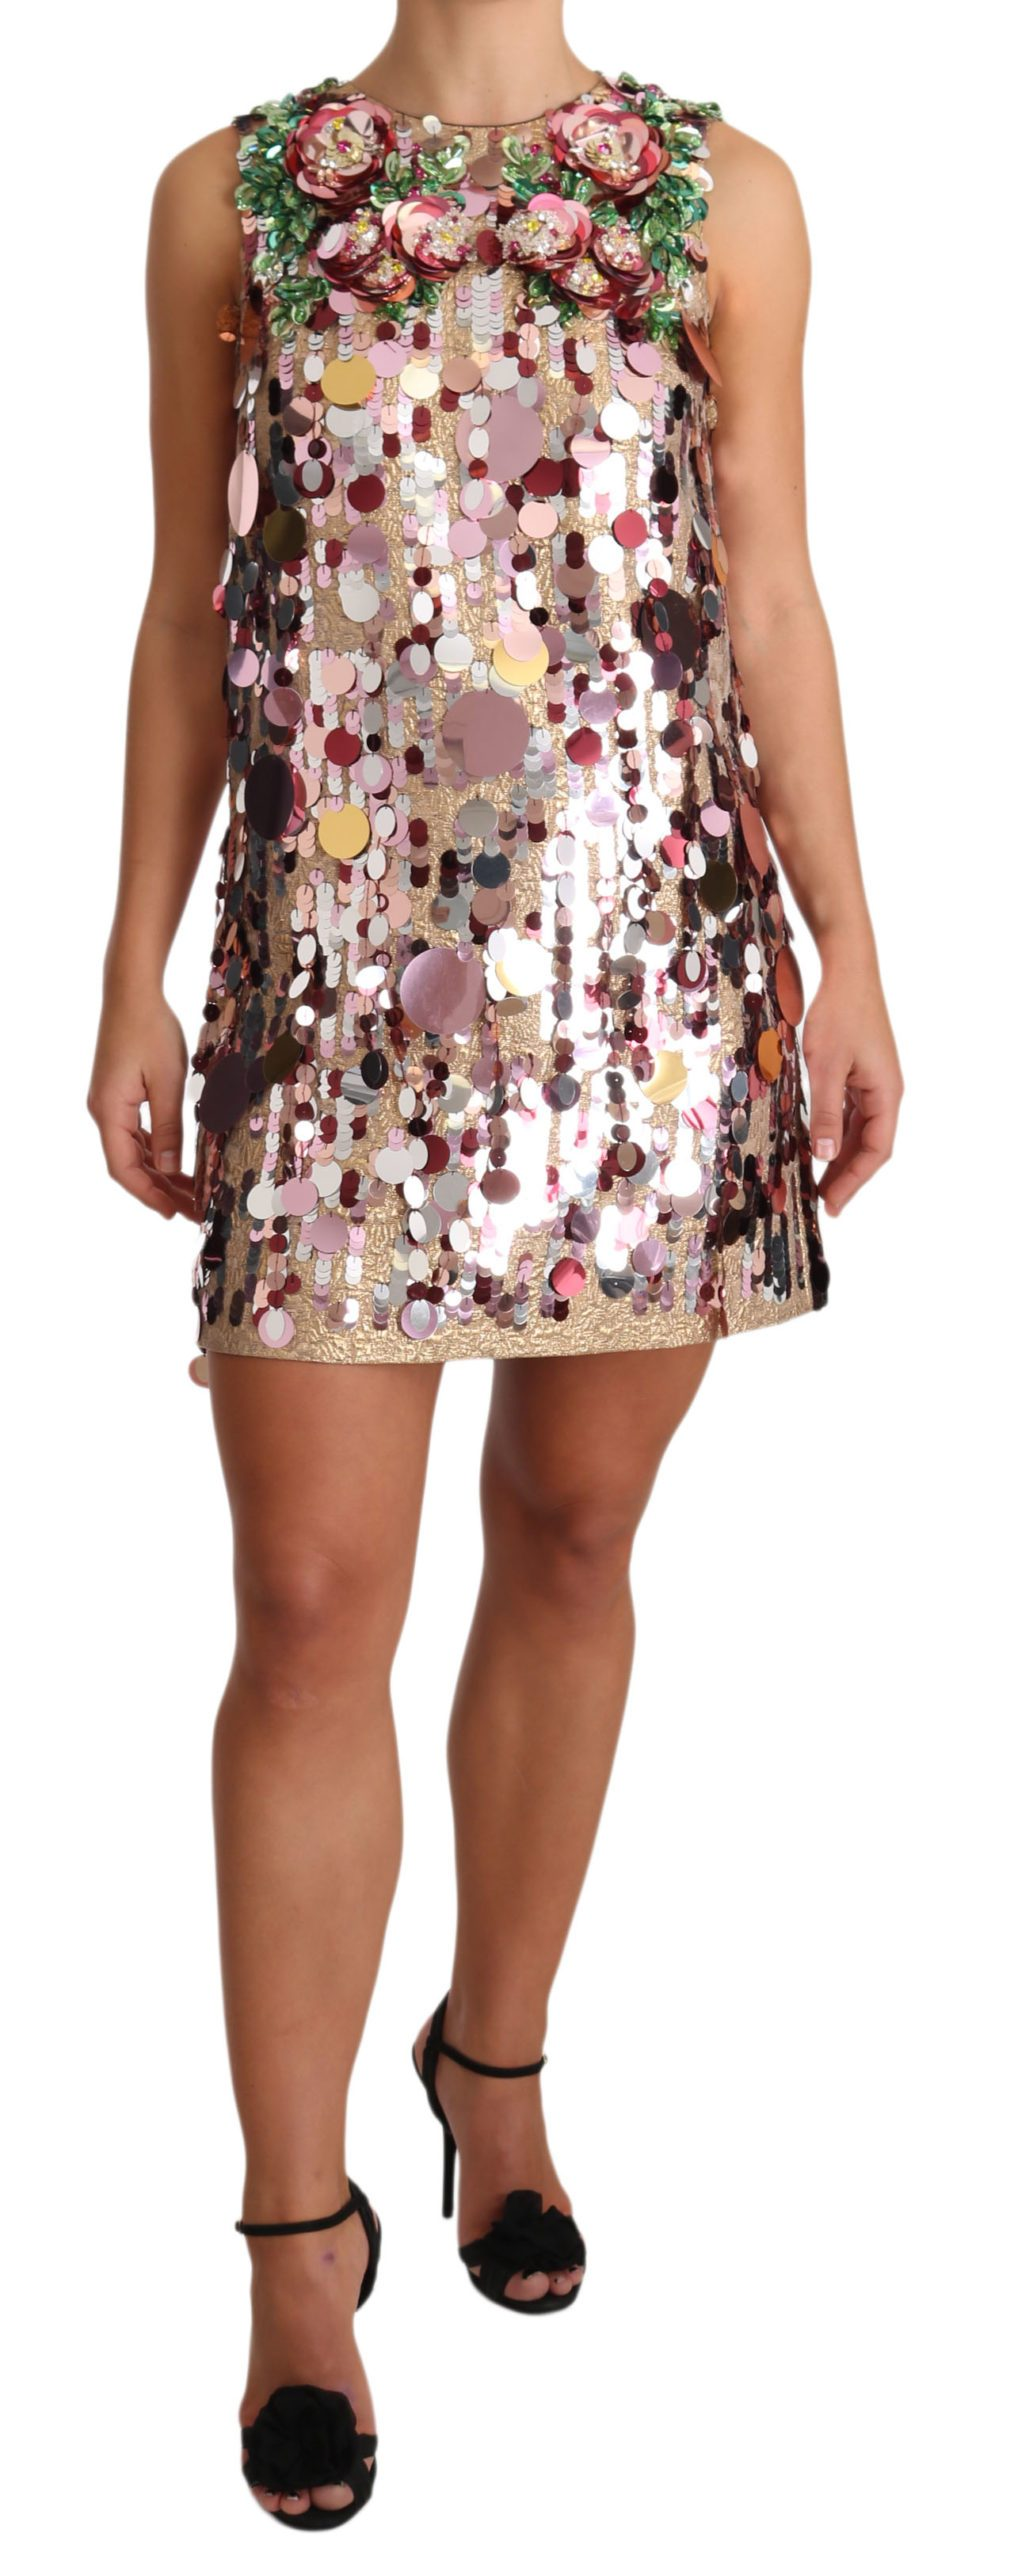 Dolce & Gabbana Women's Floral Sequined Crystal Dress Pink DR1918 - IT40|S